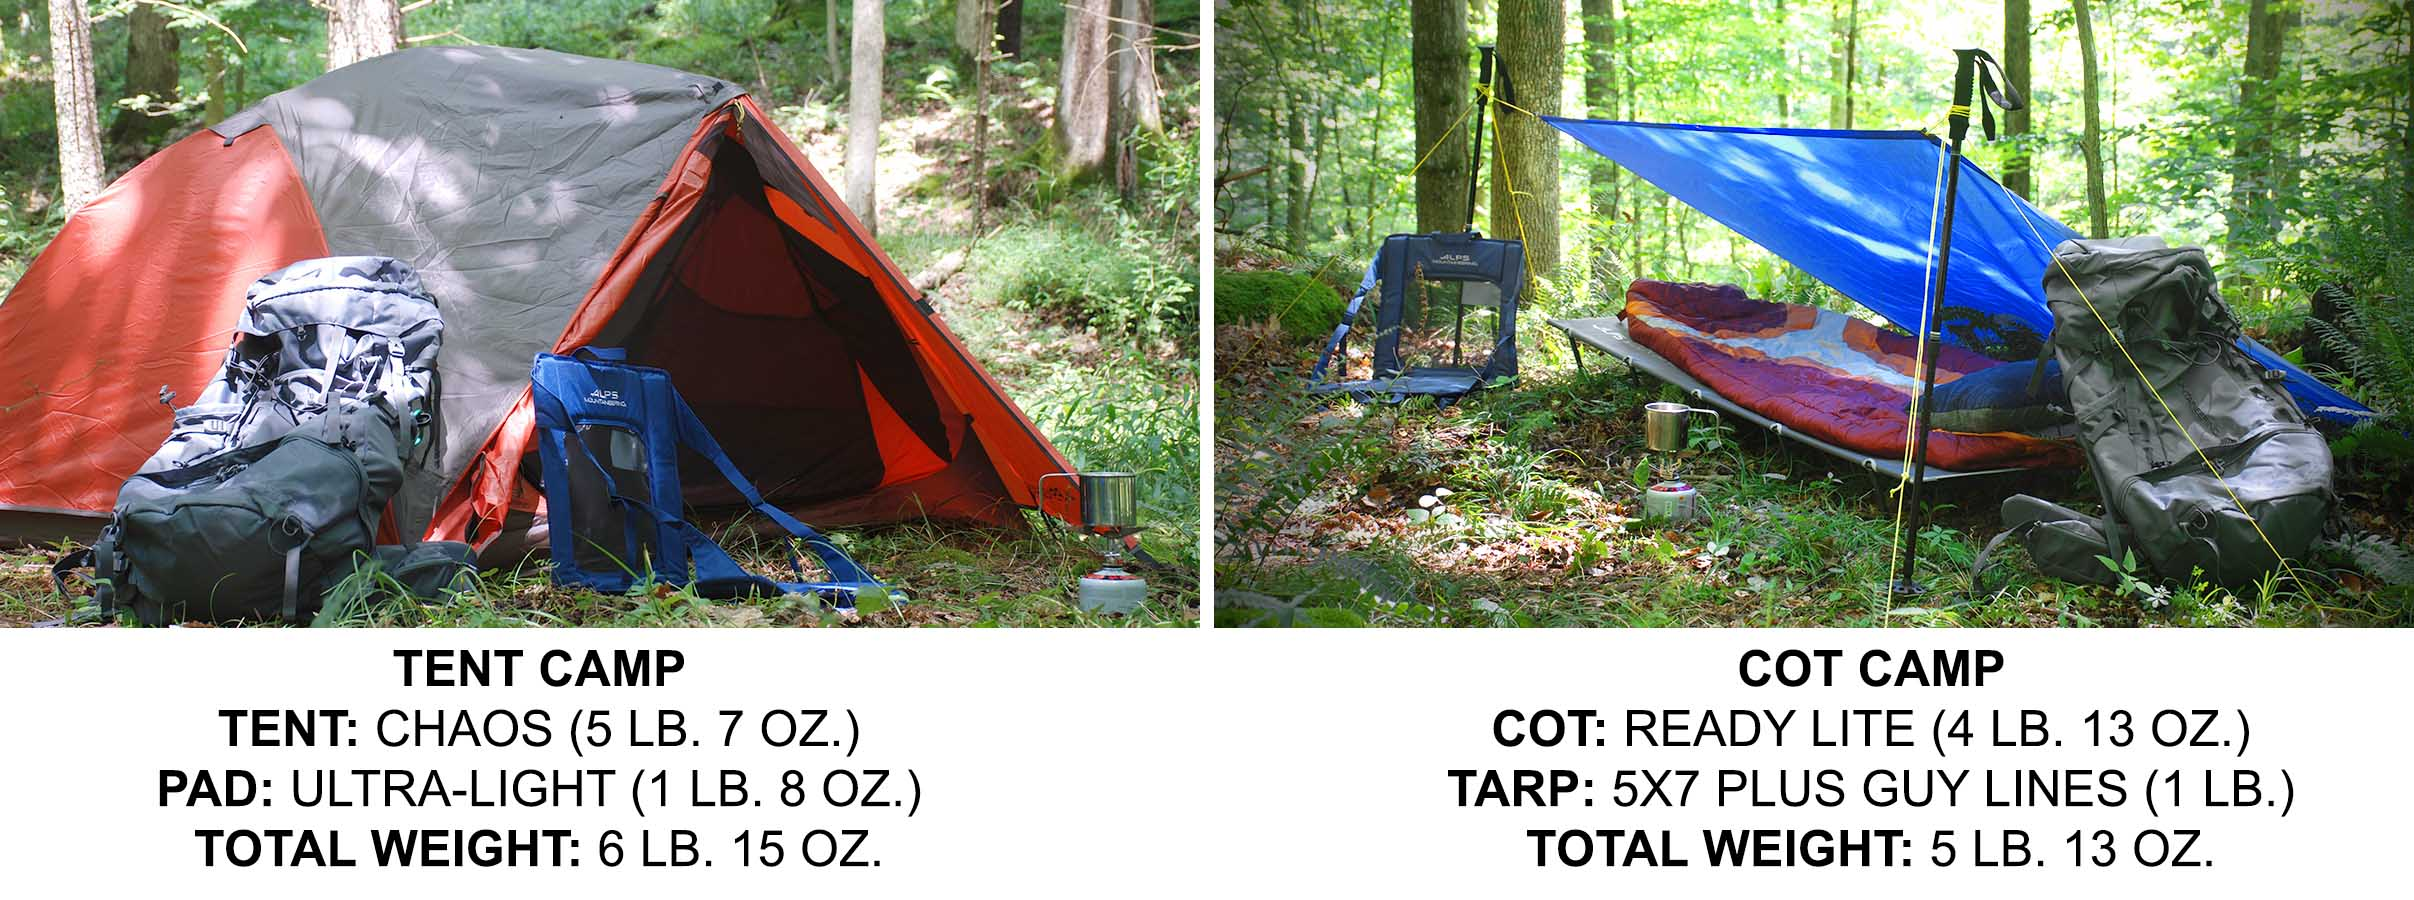 The key to making your trip a pleasant experience is intelligent equipment and supply selection and ... & Field-Tested: Building a Comfortable Campsite u2013 Outside Daily